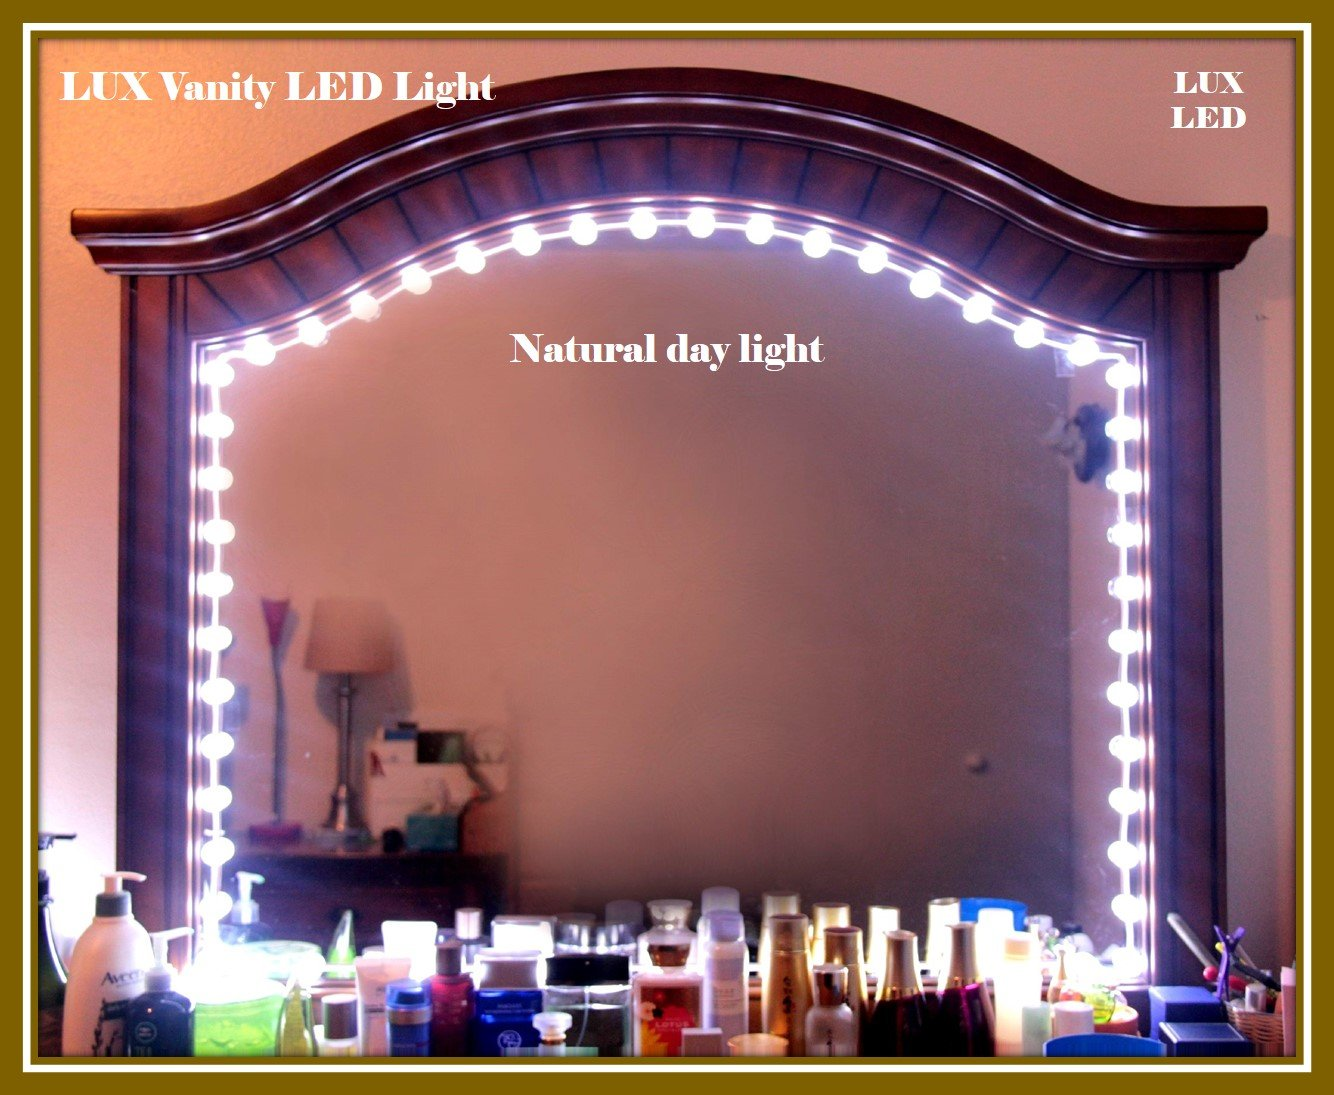 hot sale 2017 Luxled Vanity Mirror Lights Makeup Cosmetic Mirror Anti-Glare Luxurious LED Lights for Mirror Lights w/Dimmer Touch Switch All in One Kit Set (White 6ft)